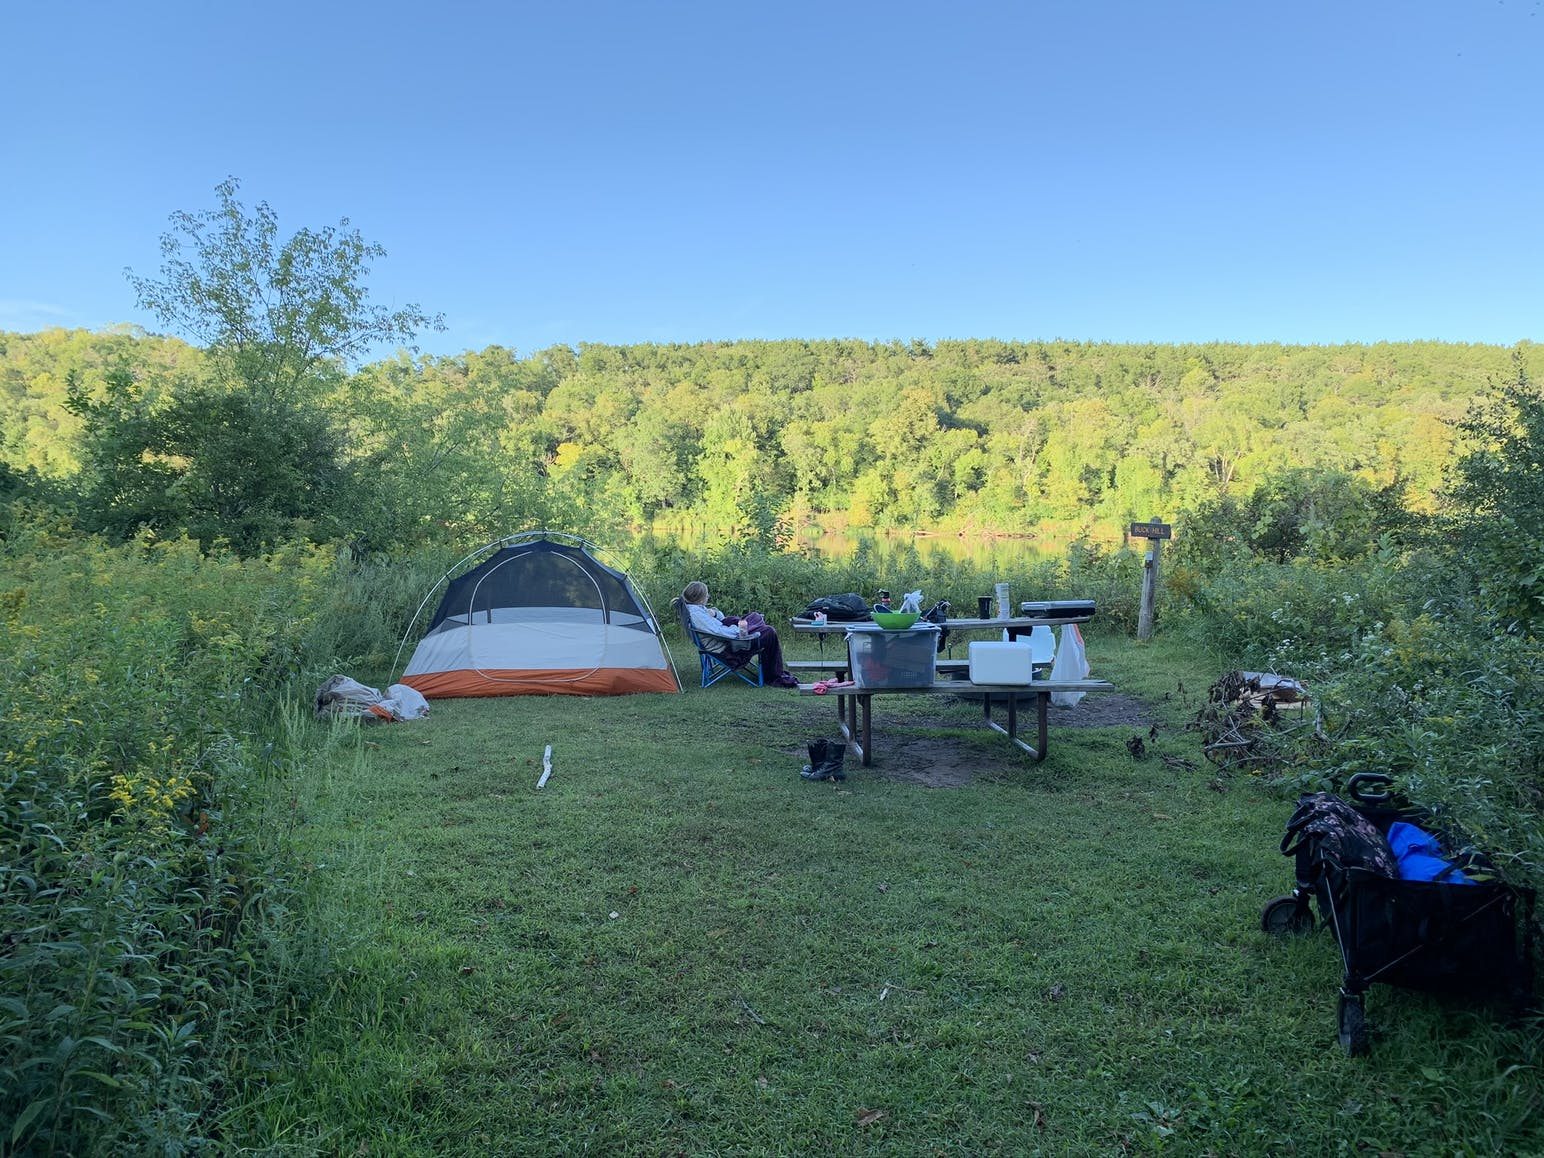 campsite surrounded by forested hills